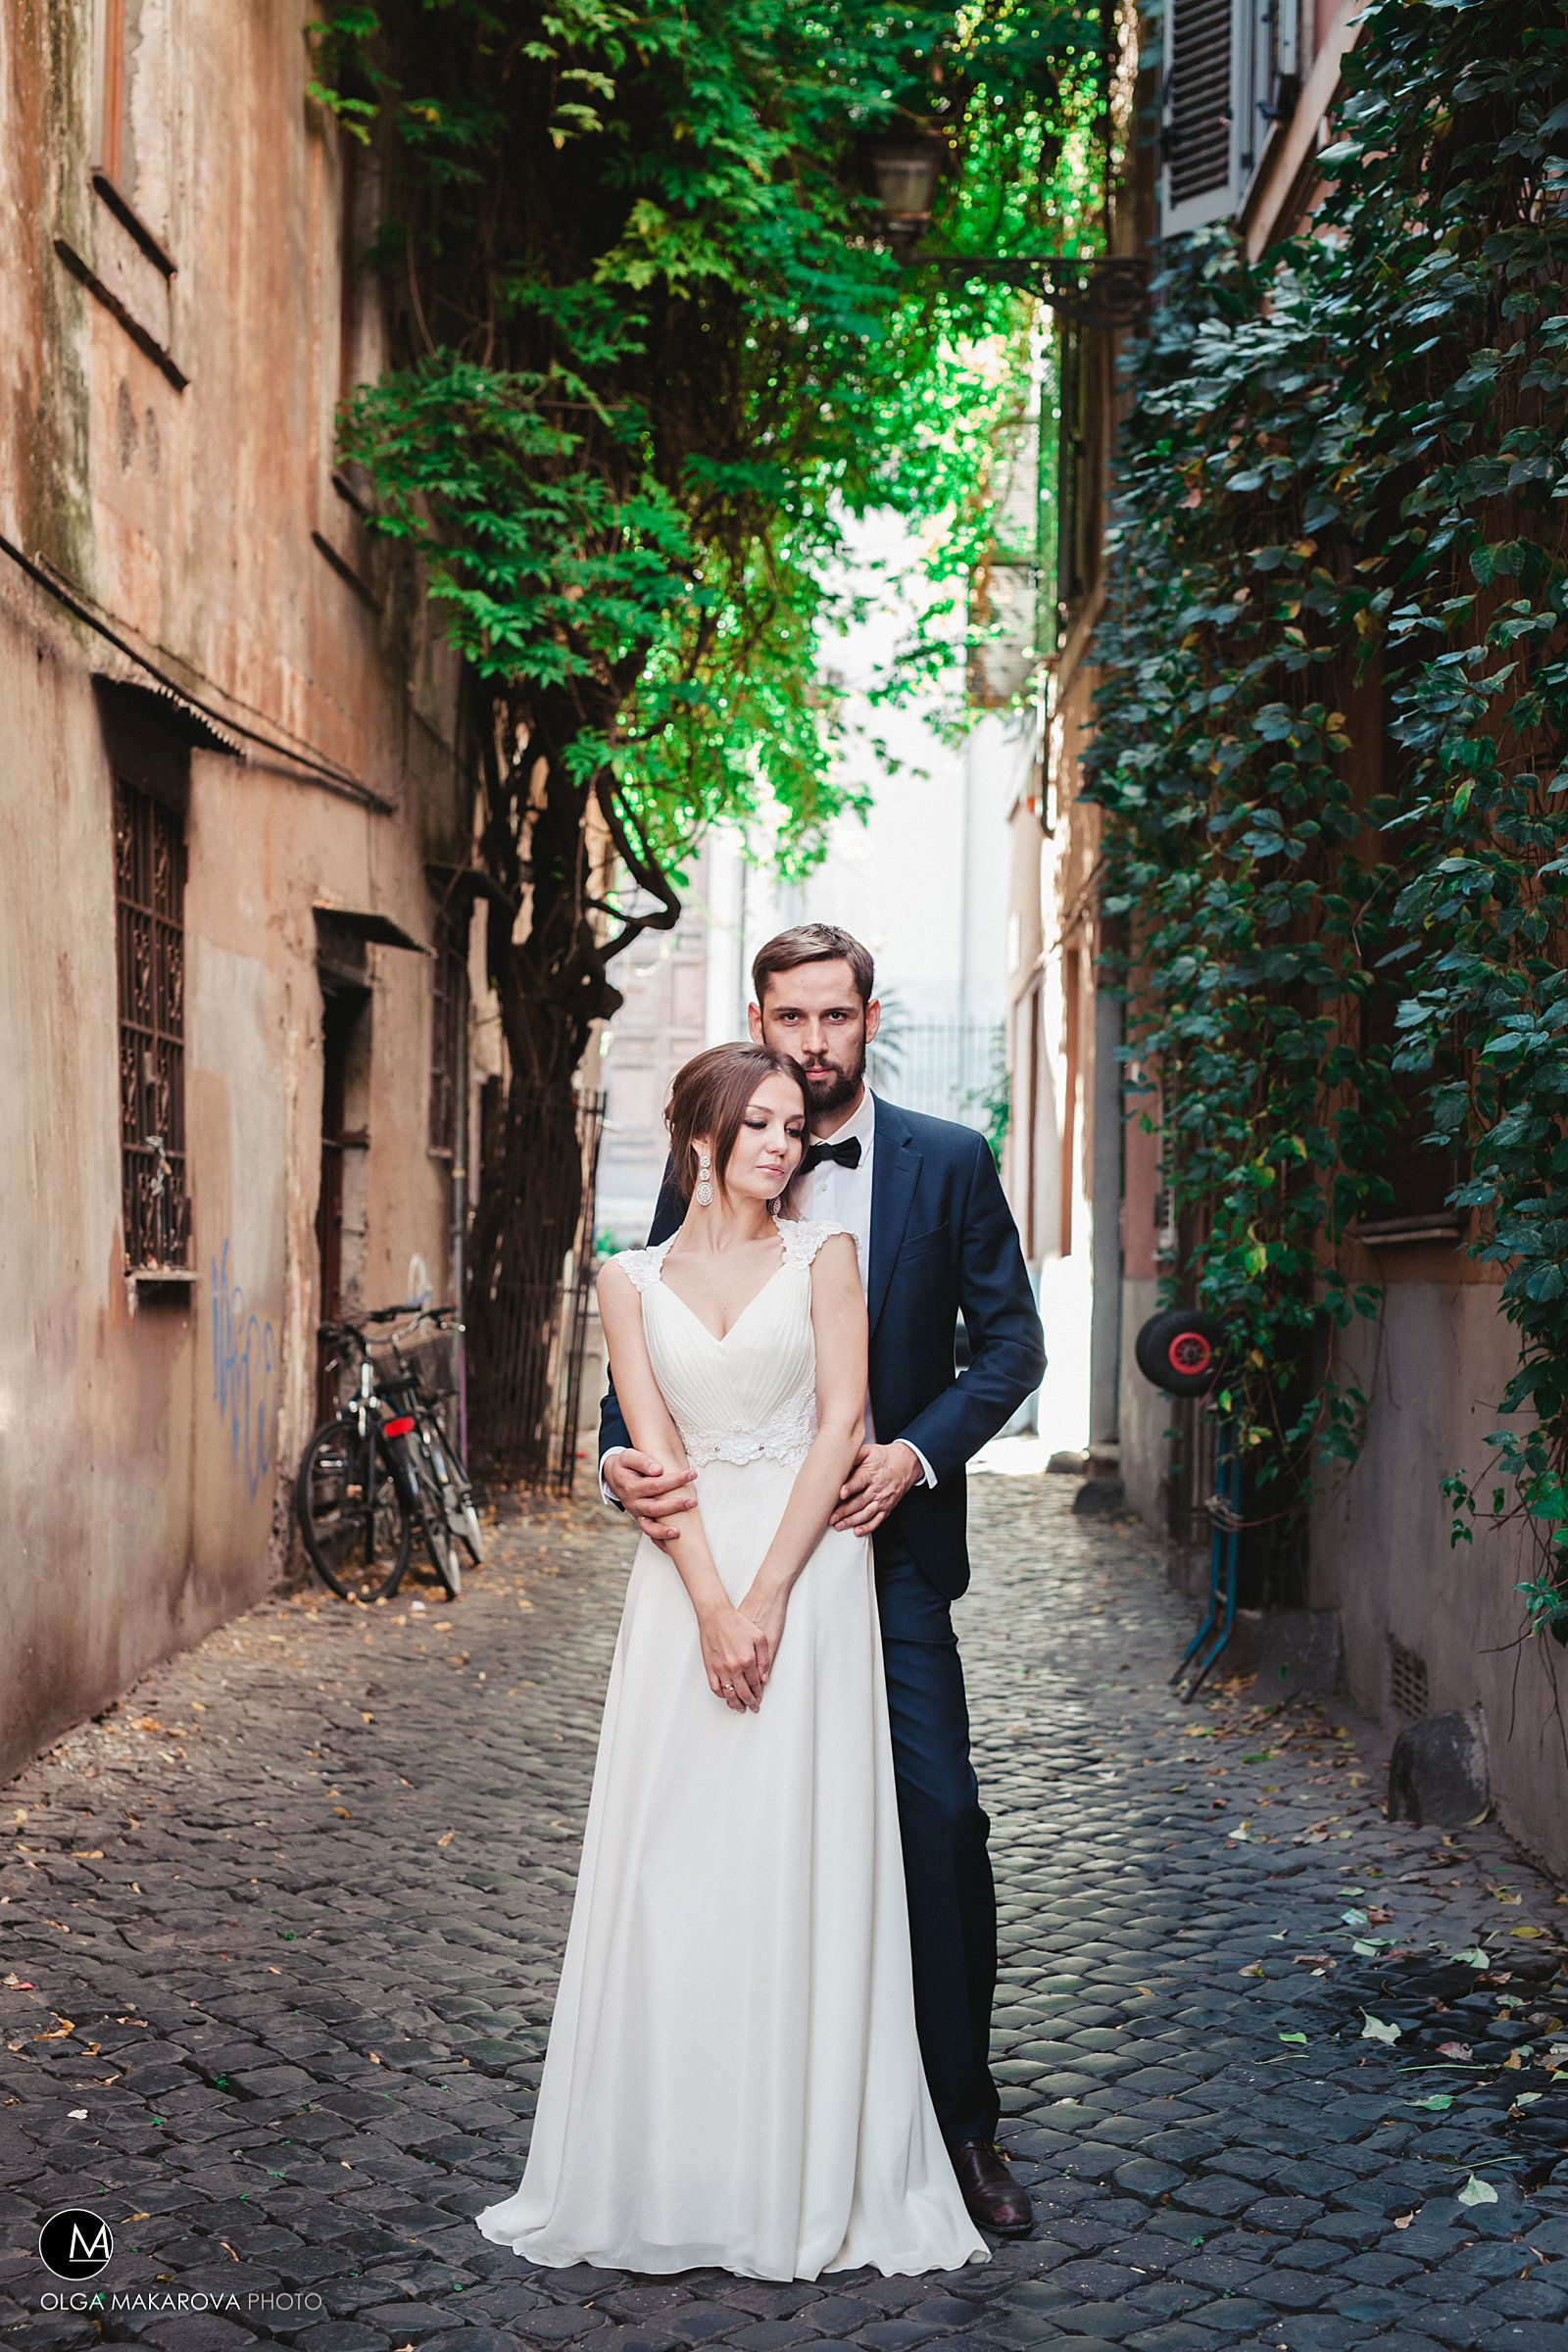 #Wedding #photography in #Italy